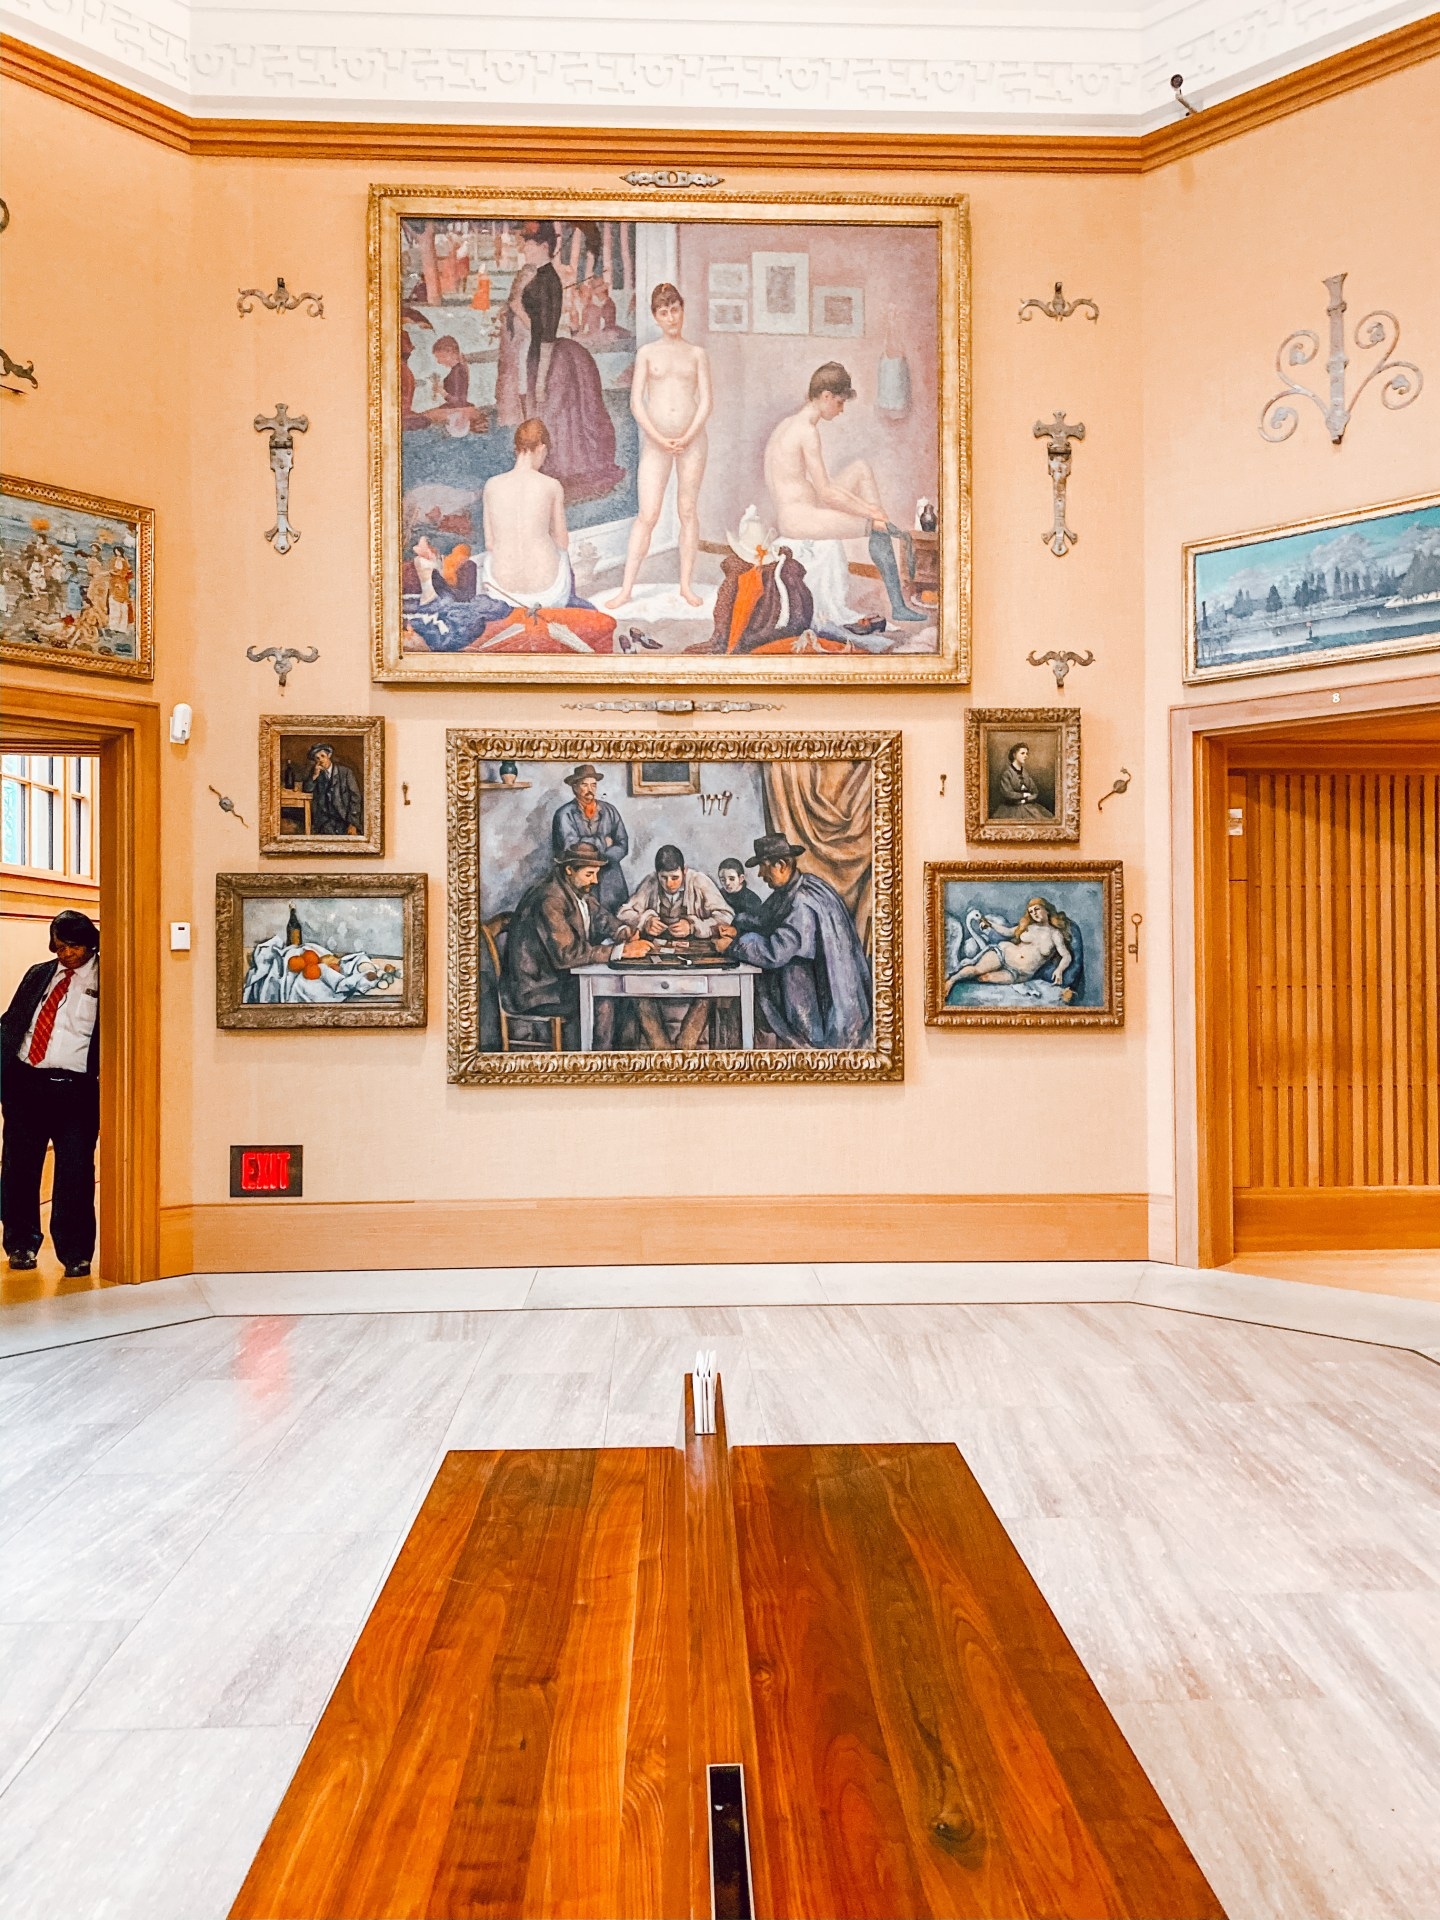 Lifestyle Blogger Chocolate and Lace shares her visit to the Barnes Foundation in Philadelphia, PA.